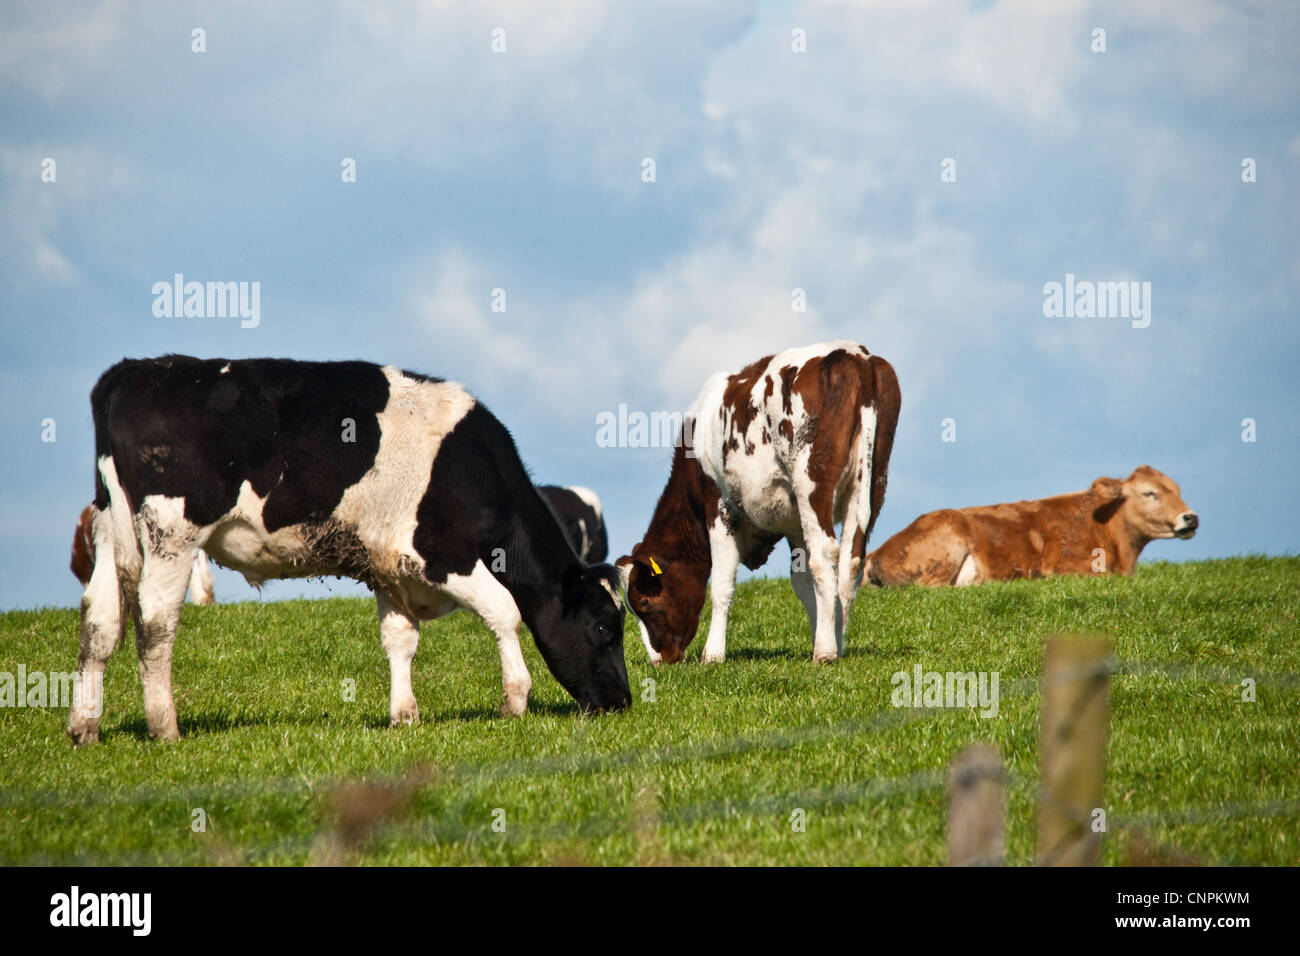 a herd of cows bullocks in a field on a hilltop stock photo